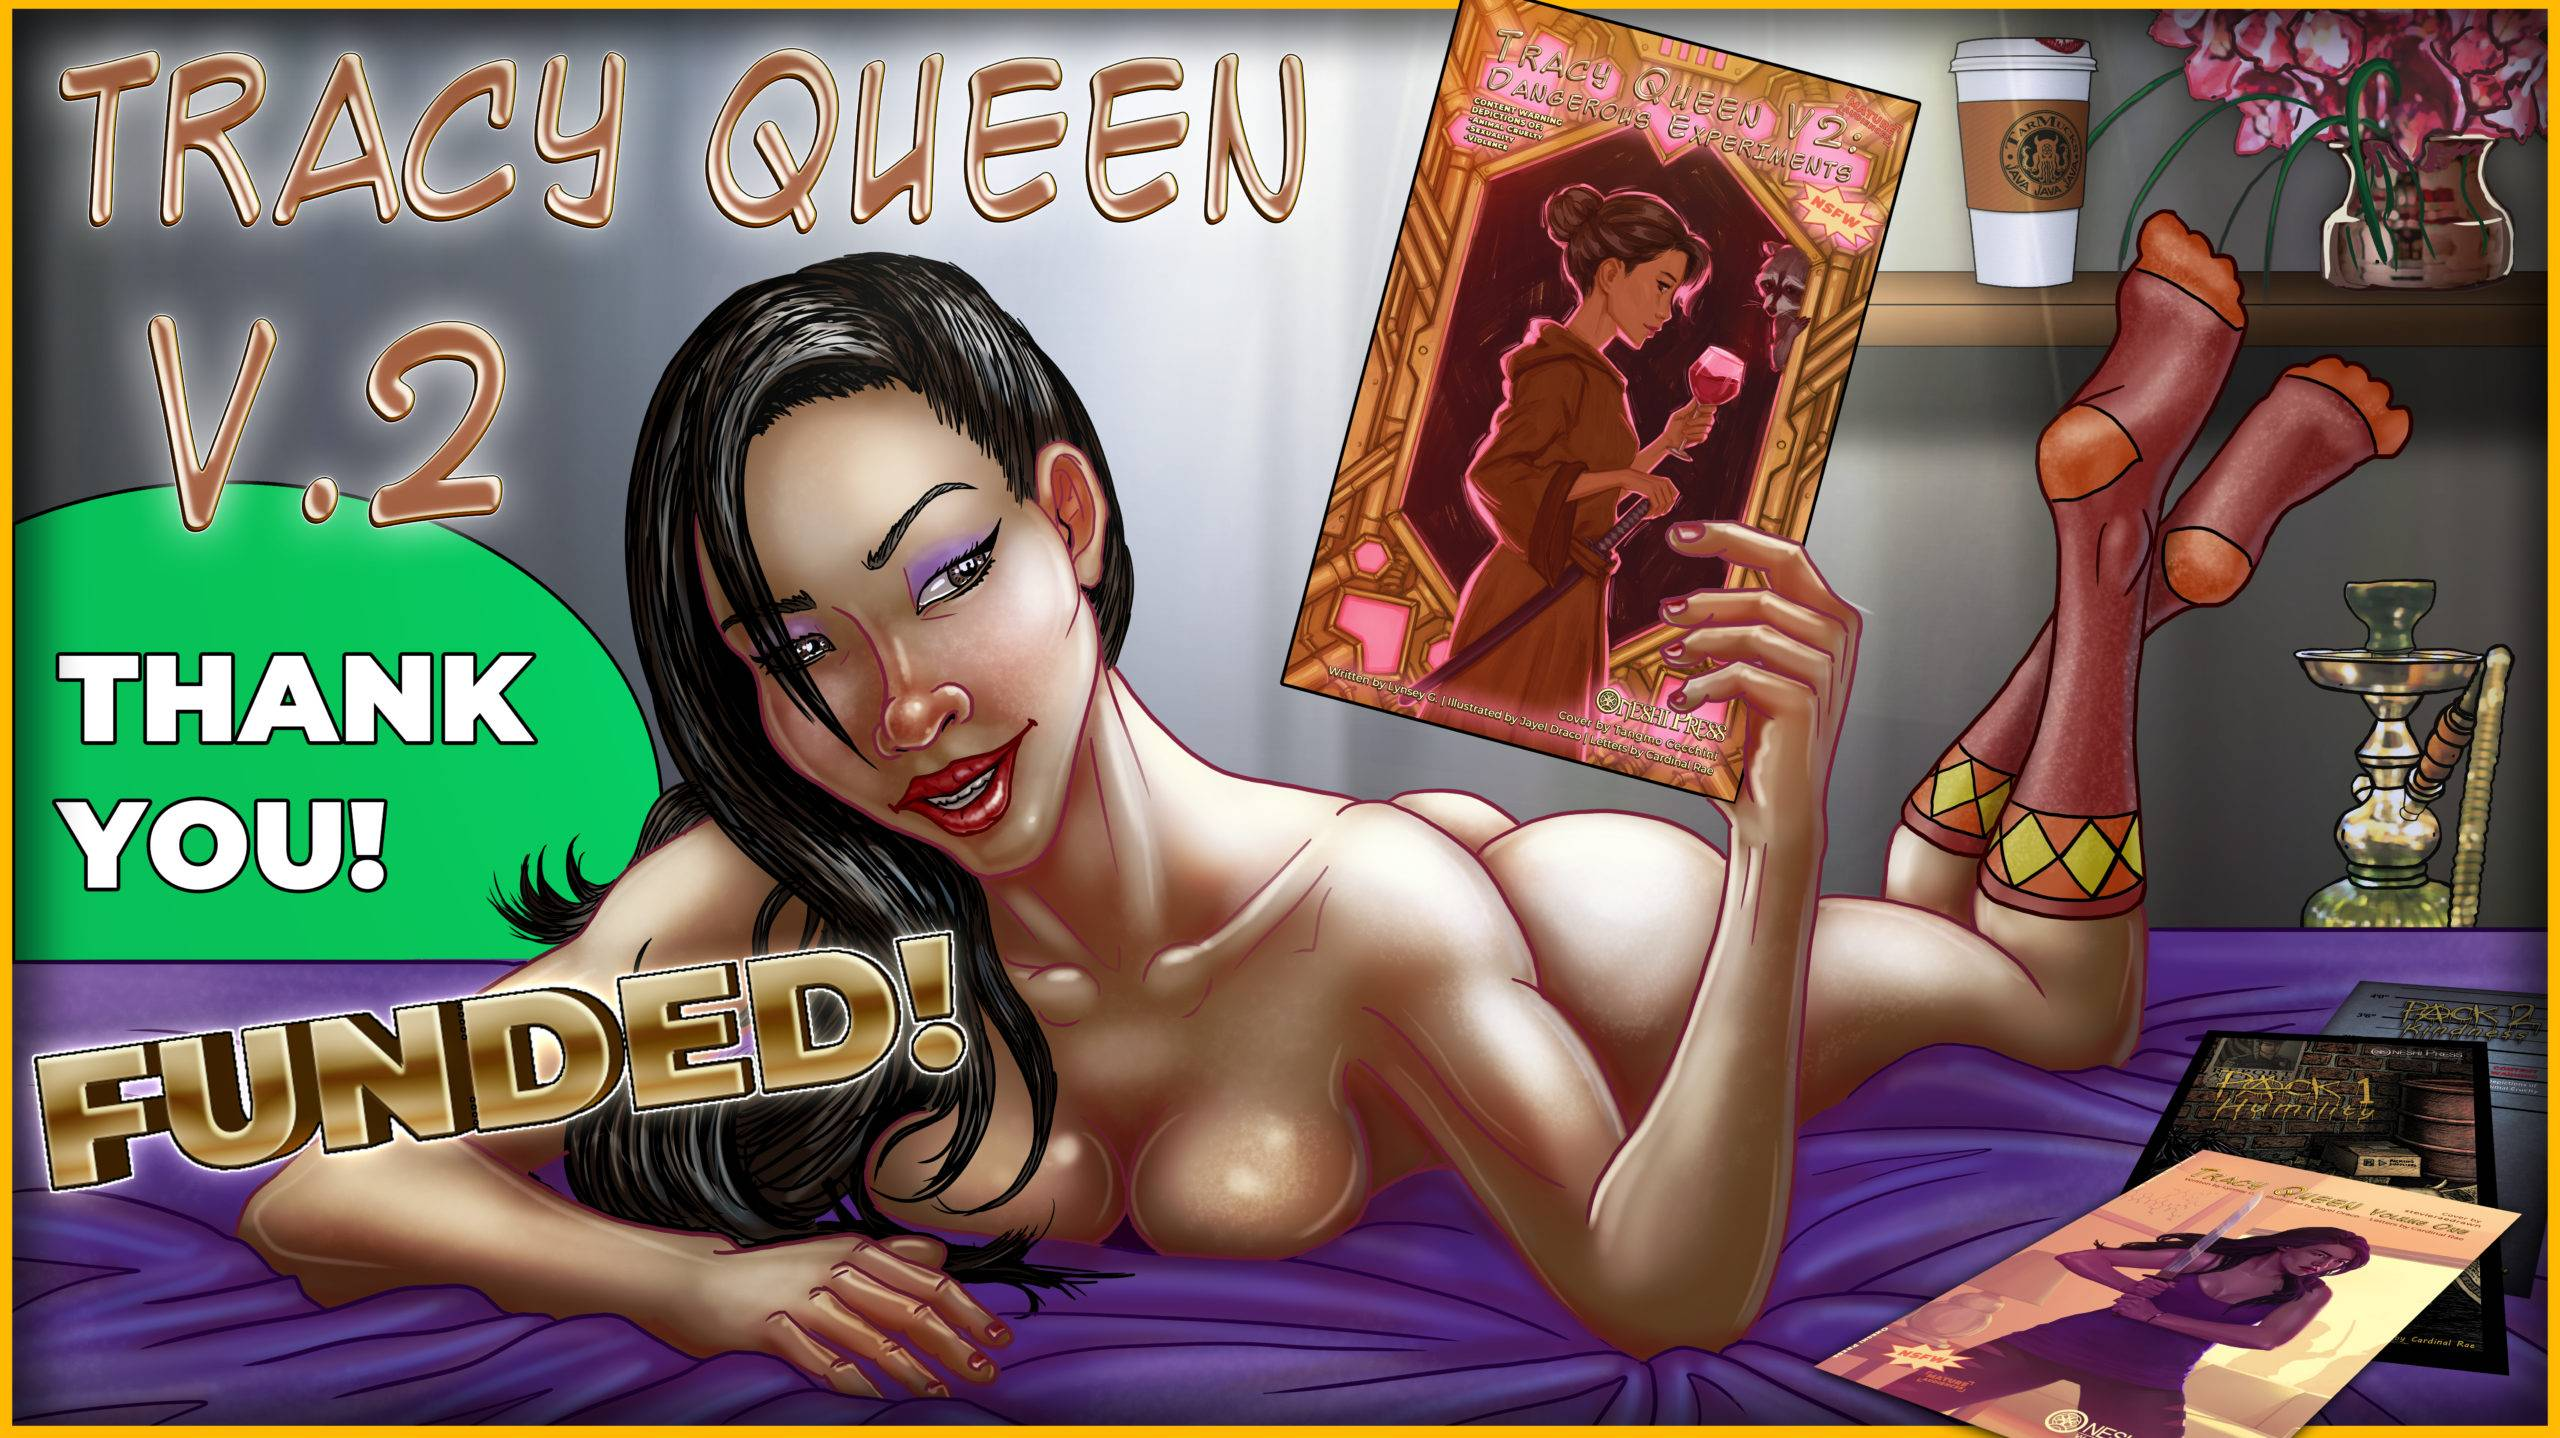 """Tracy Queen, Volume 2: Dangerous Experiments"" successfully funded on kickstarter"